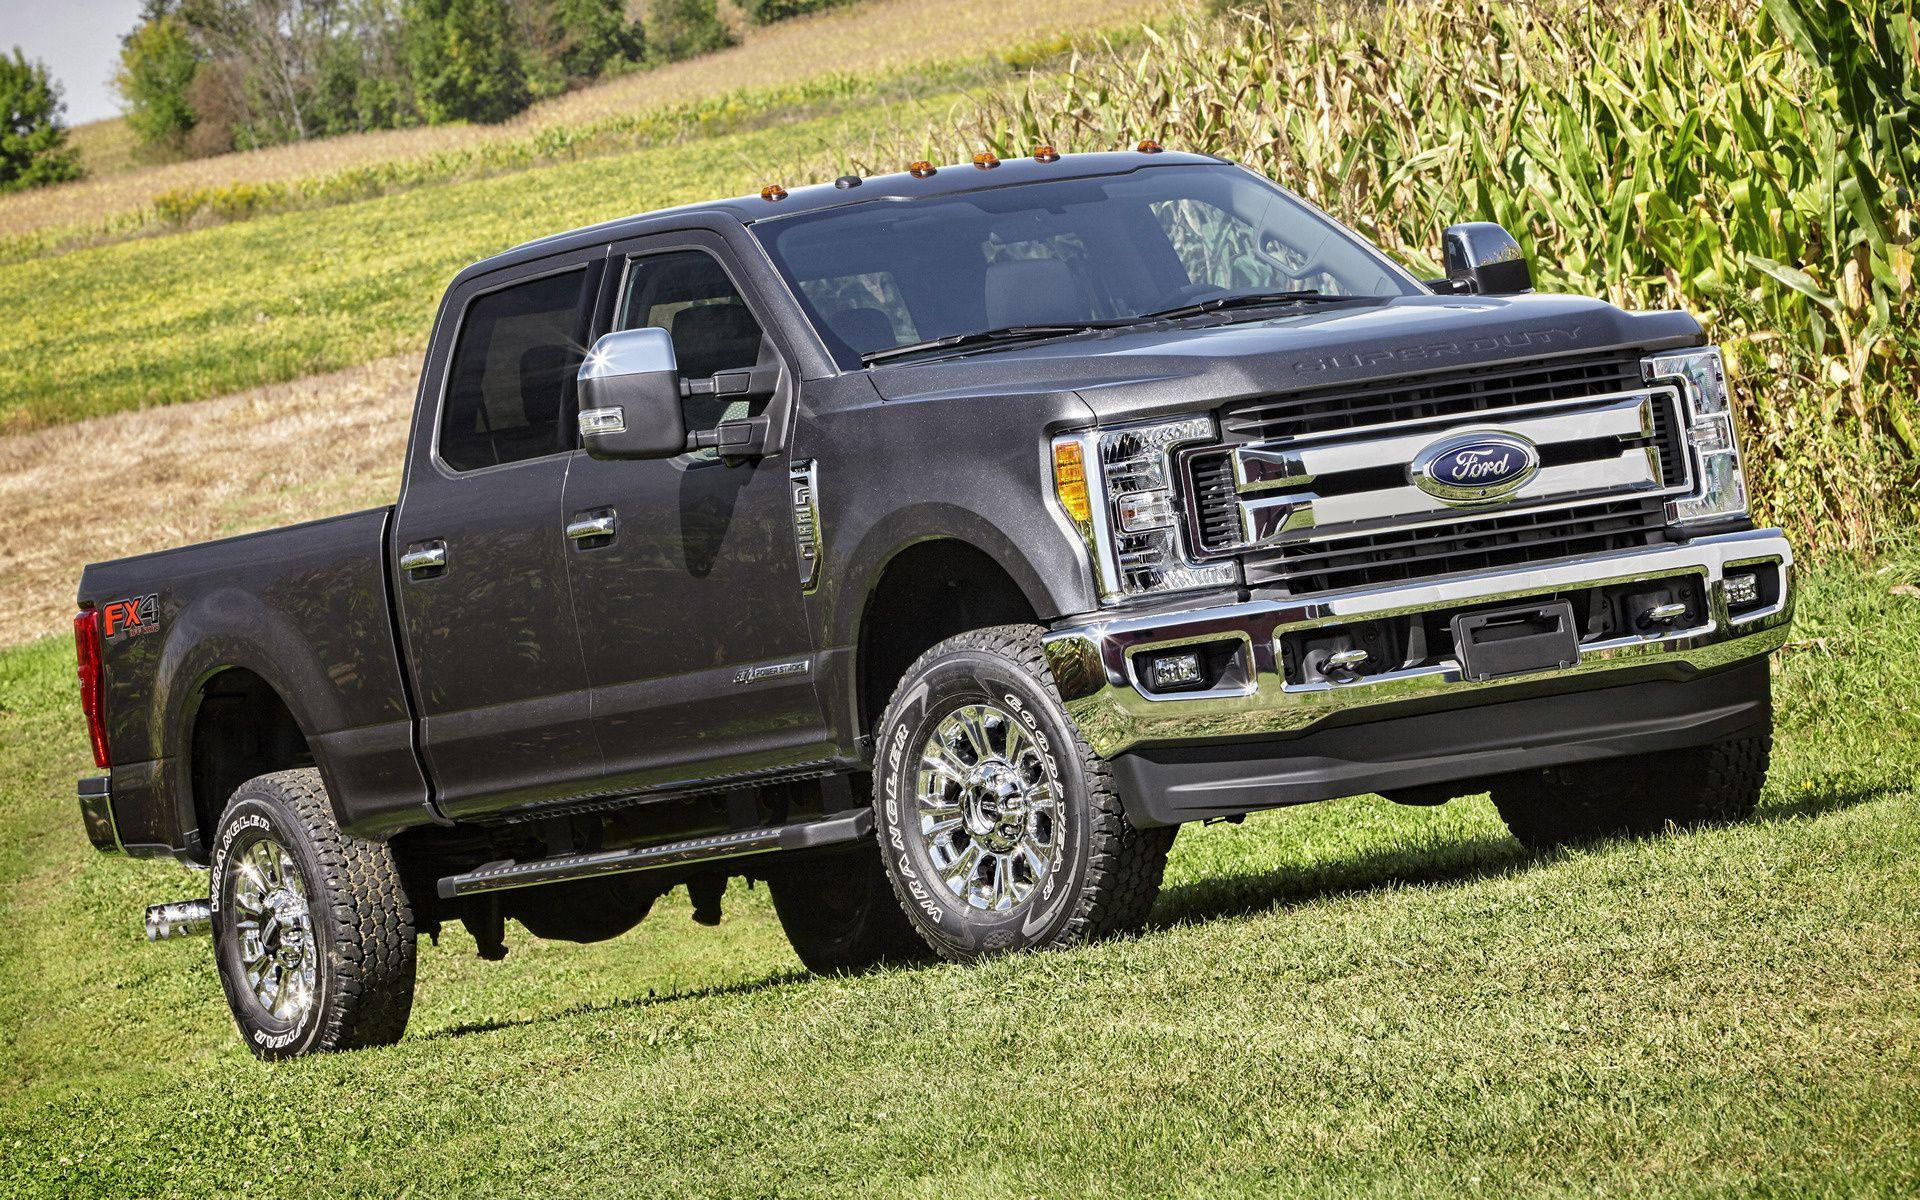 Ford F-250 XLT FX4 Crew Cab (2017) Wallpapers and HD Images - Car Pixel